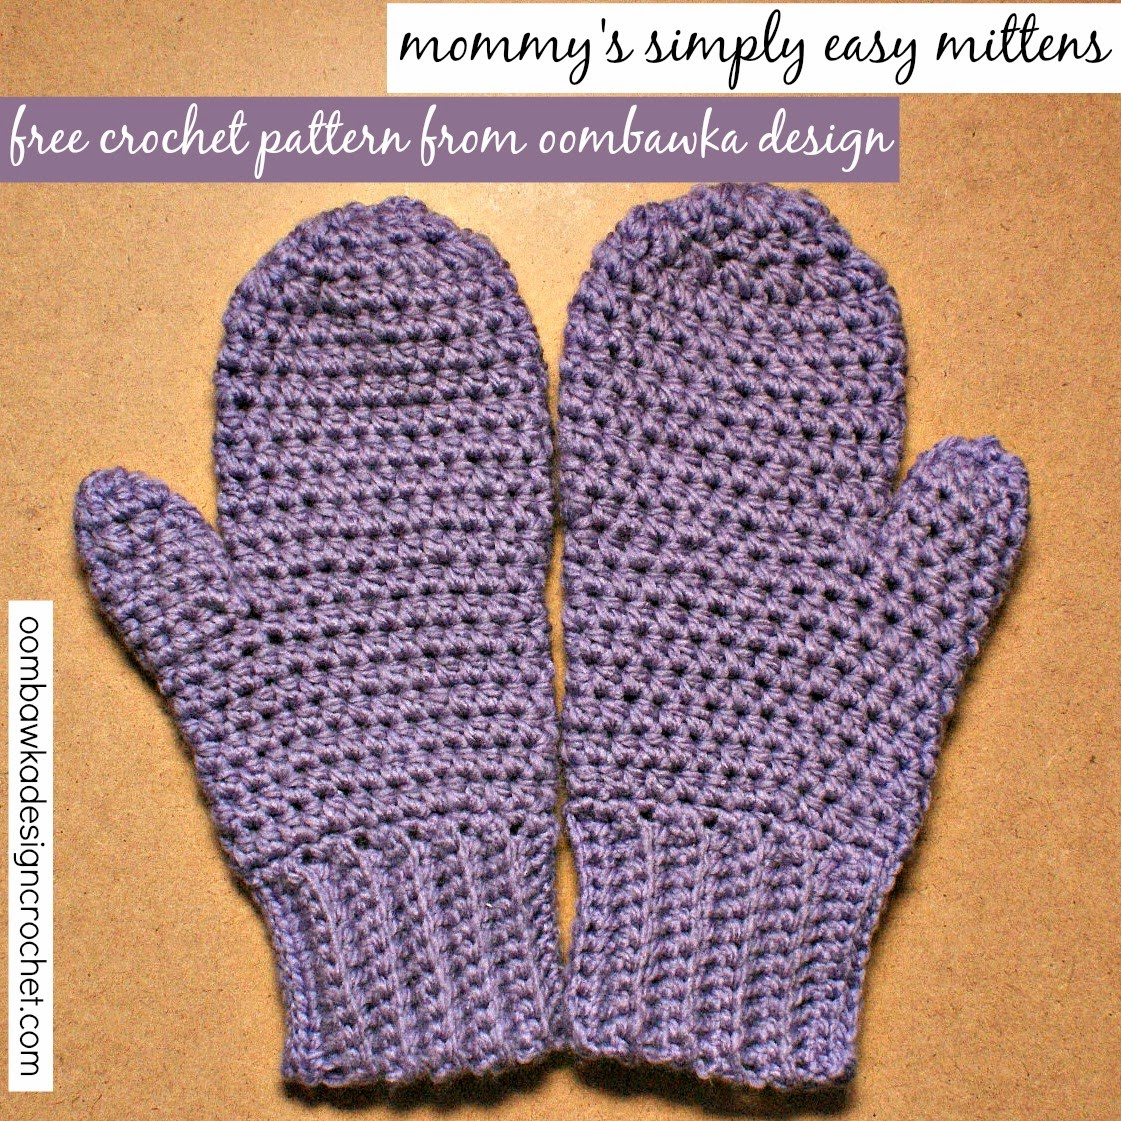 Crochet Mitten Patterns For Beginners : Crochet Patterns Free Easy Mittens images